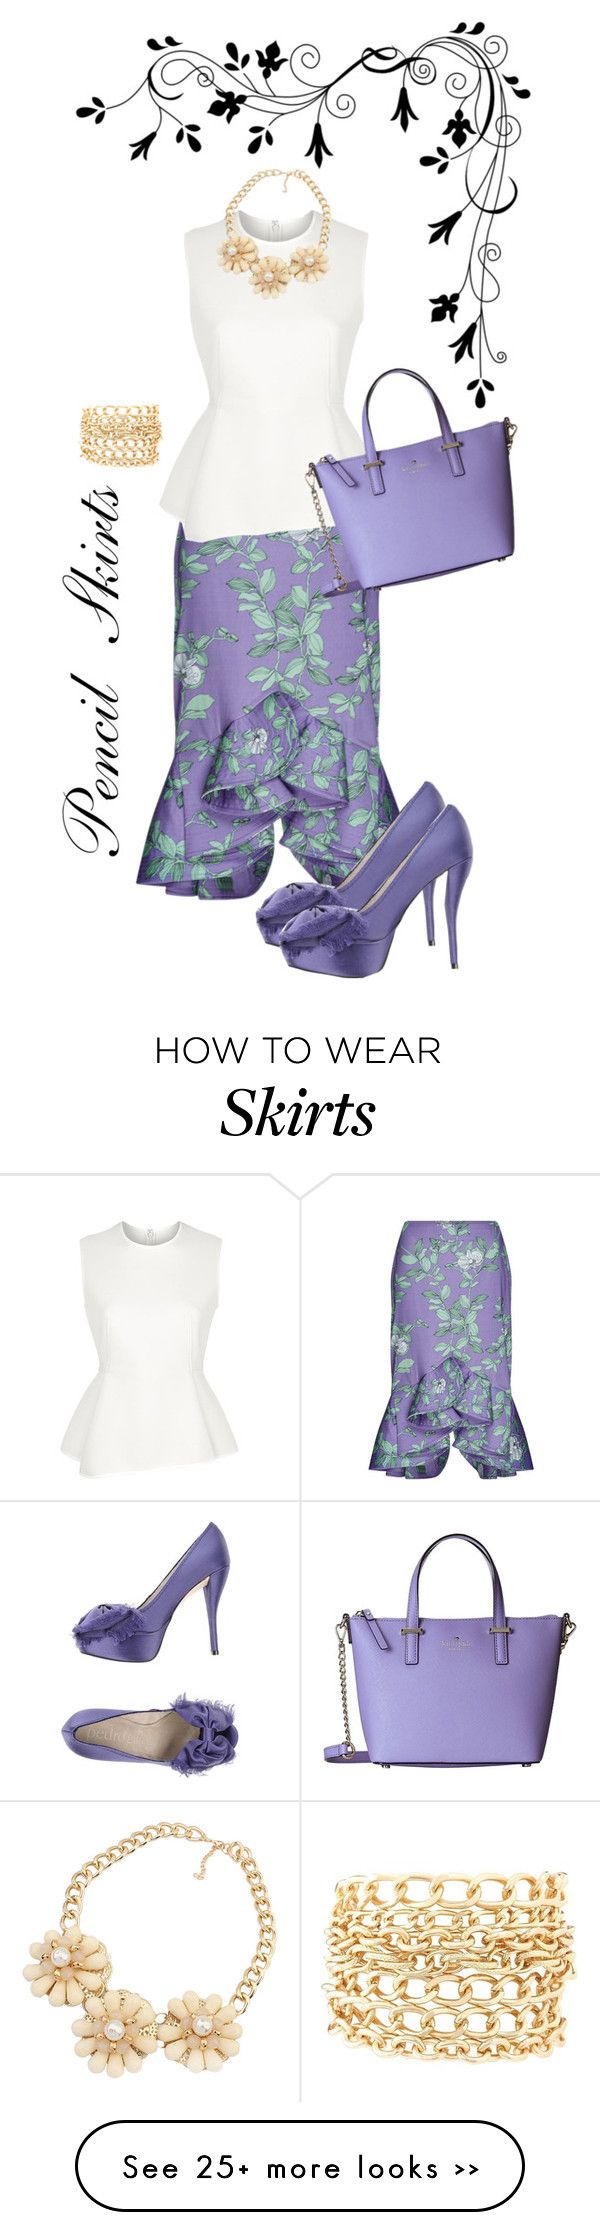 """""""Summer Pencil Skirt"""" by cupcakegrl12 on Polyvore"""